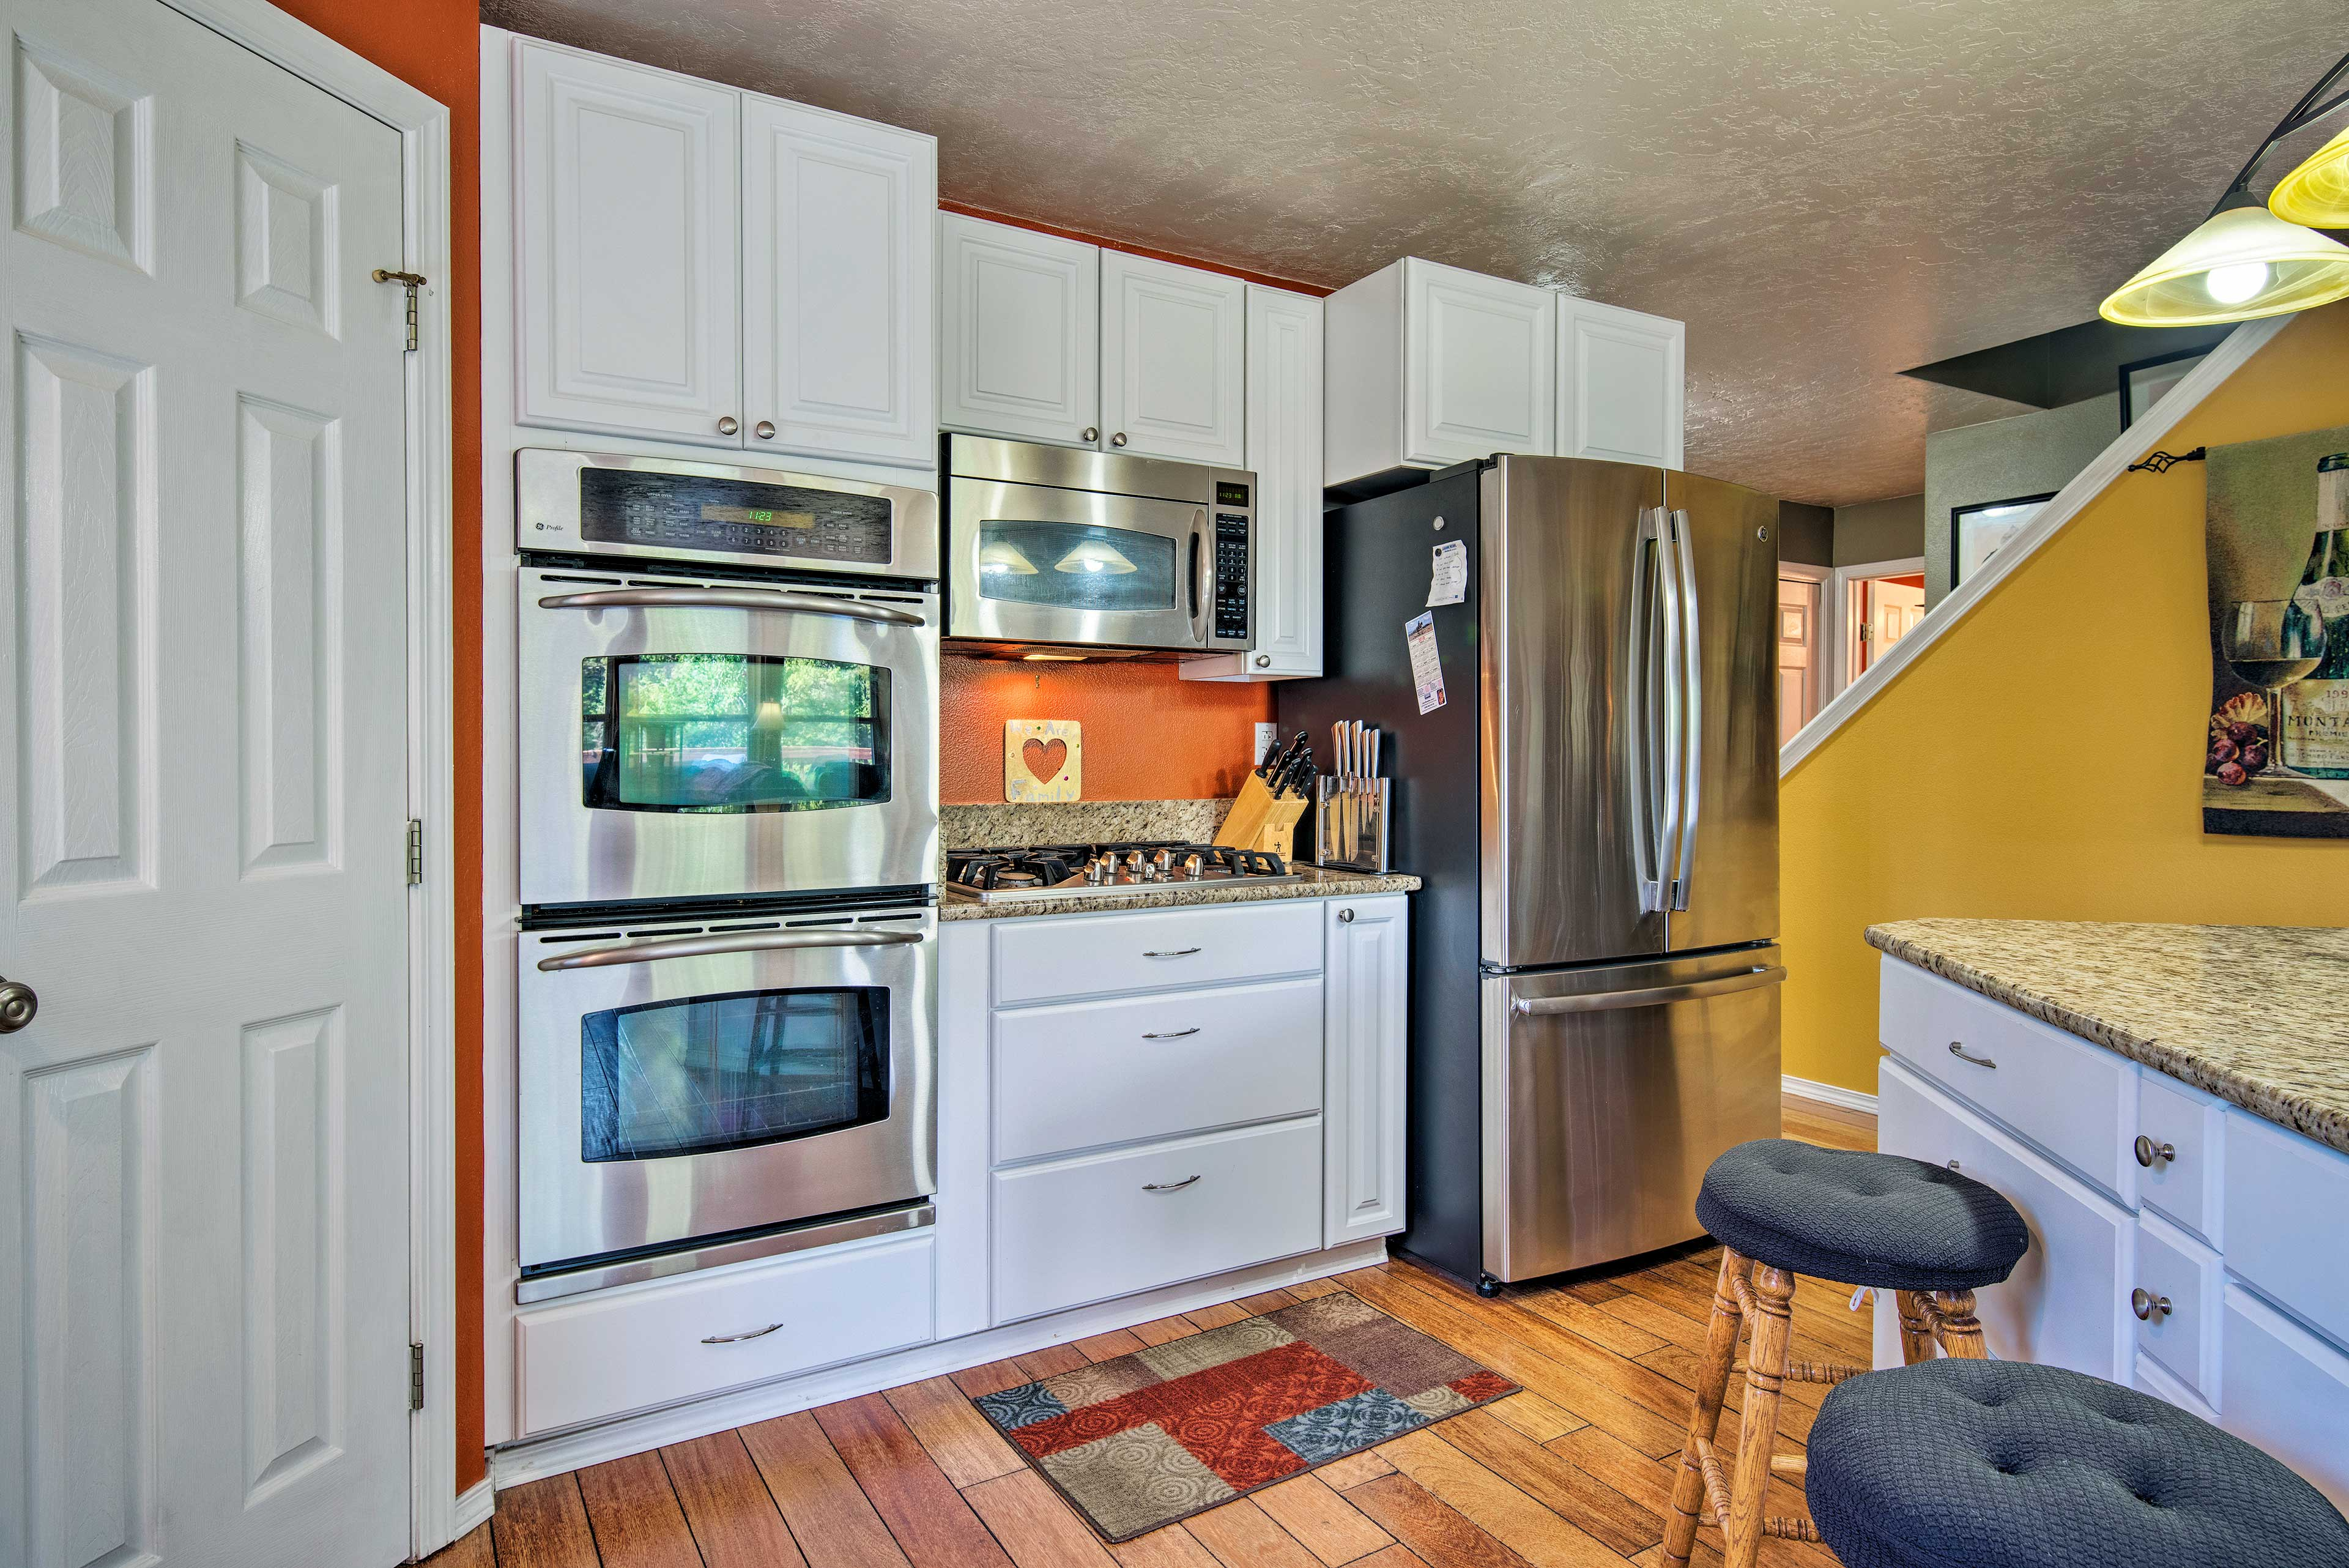 The full kitchen has stainless steel appliances and granite countertops.